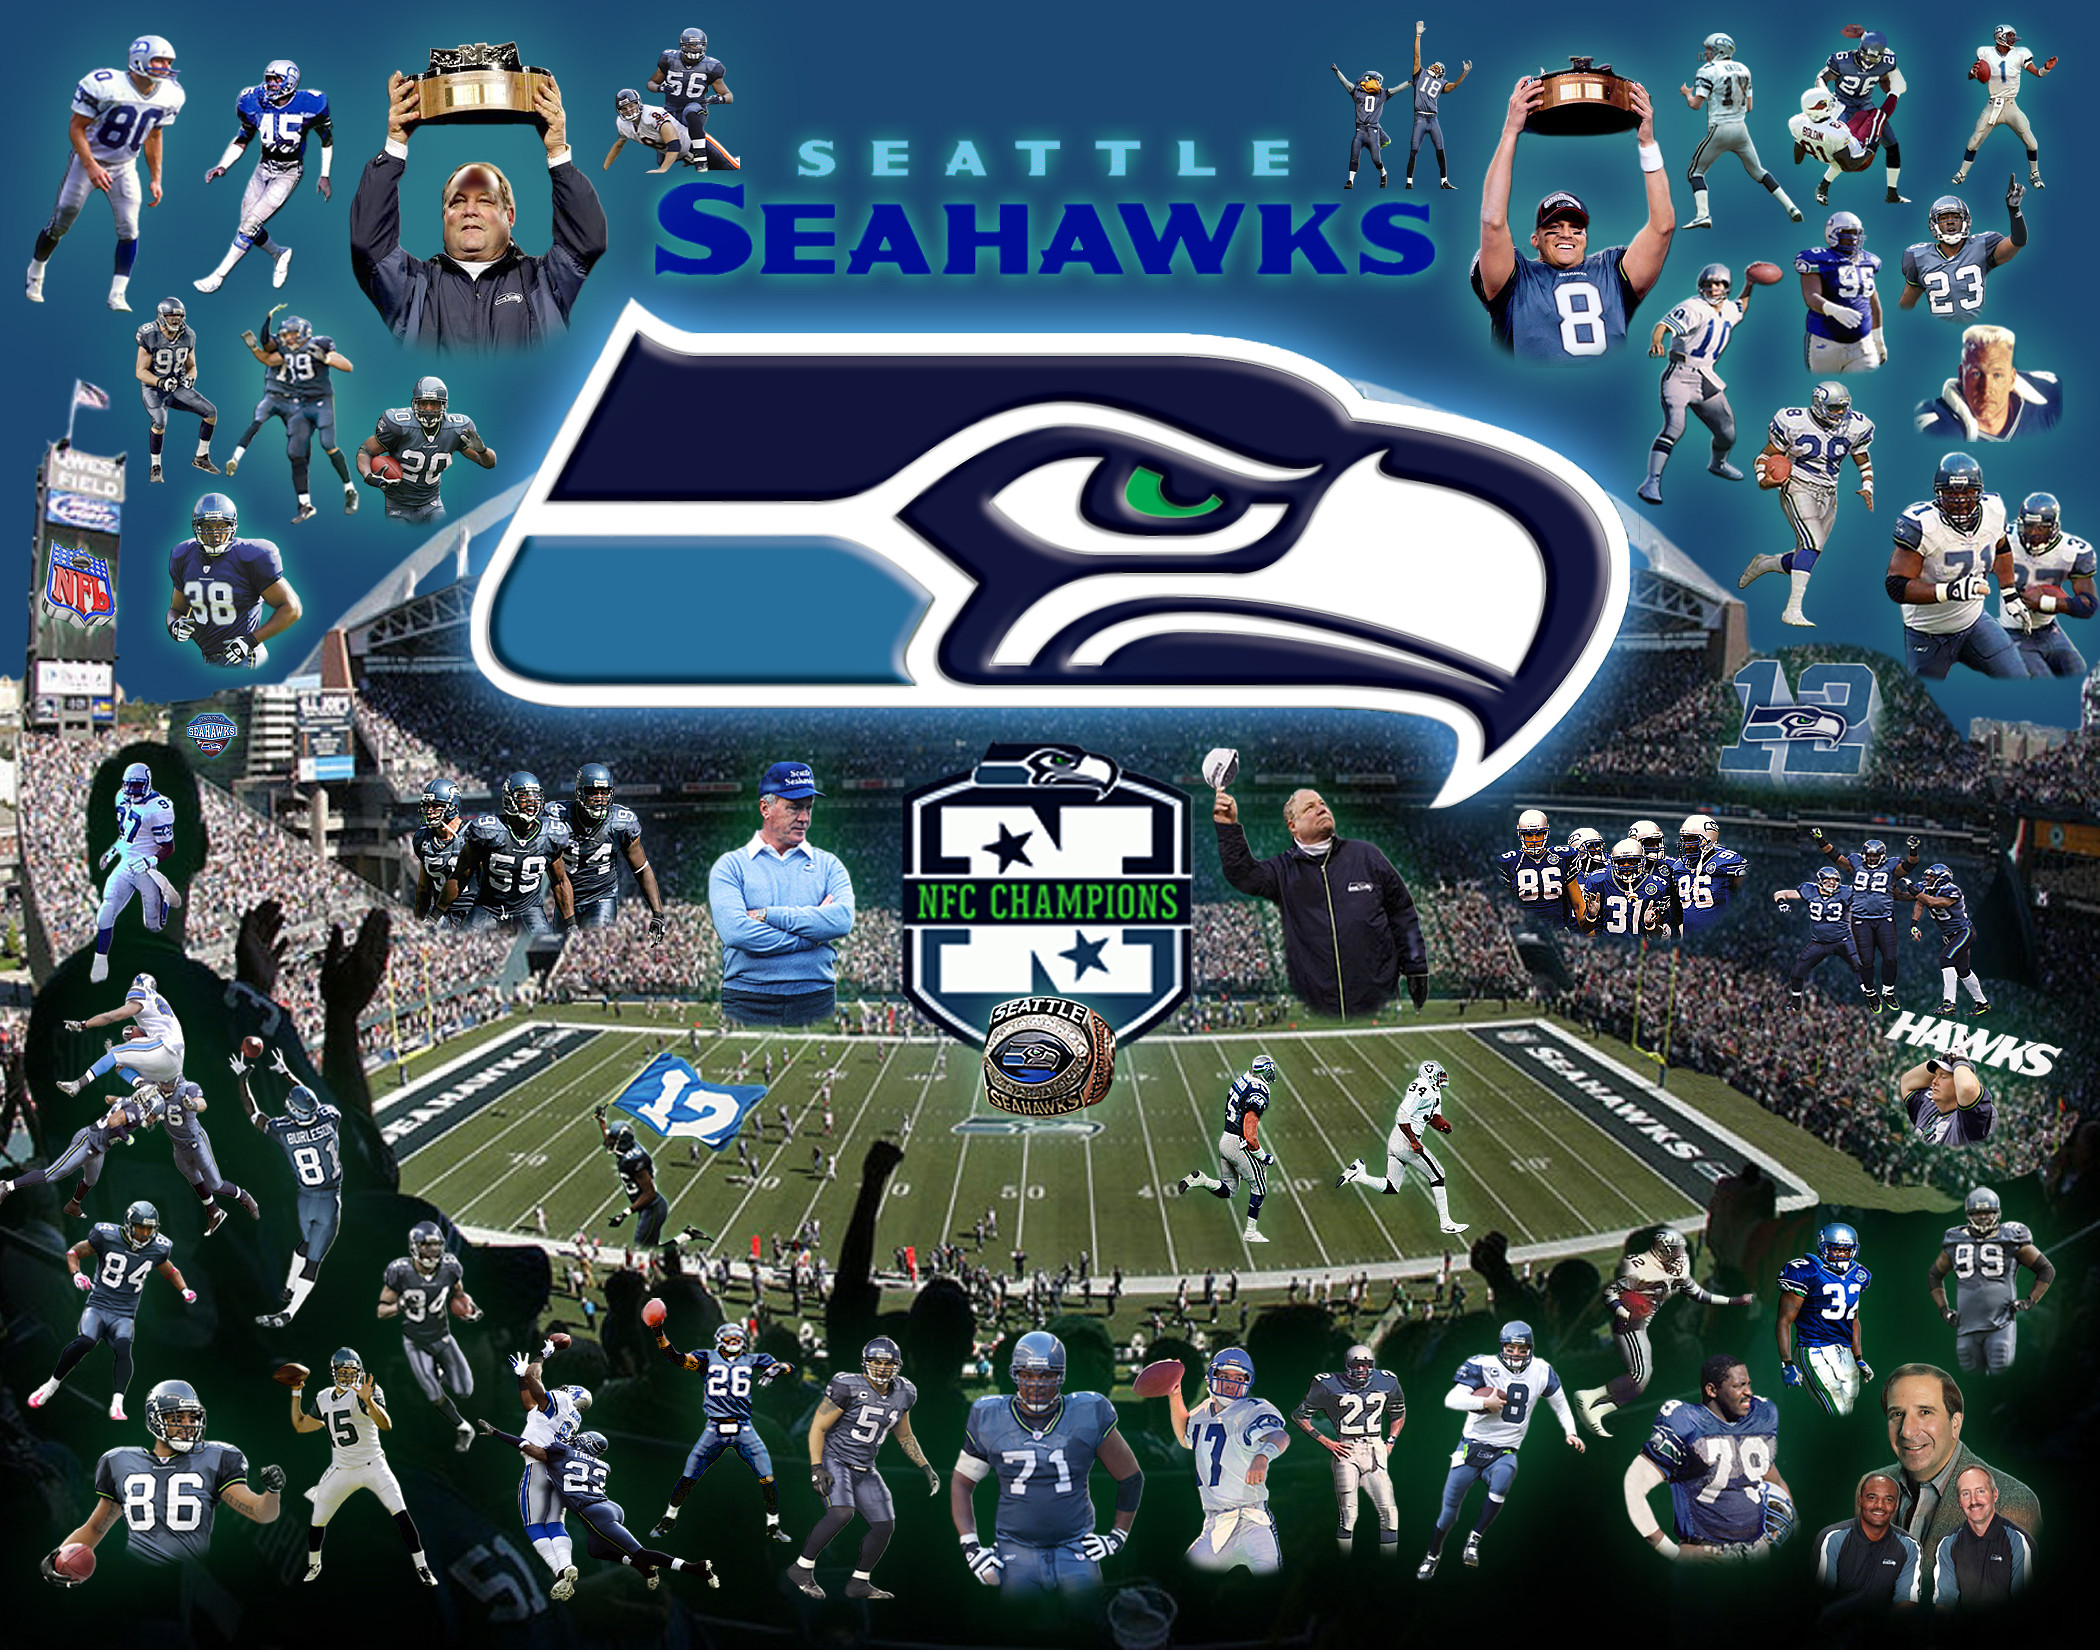 2100x1650 Seattle images SEAHAWKS! HD wallpaper and background photos